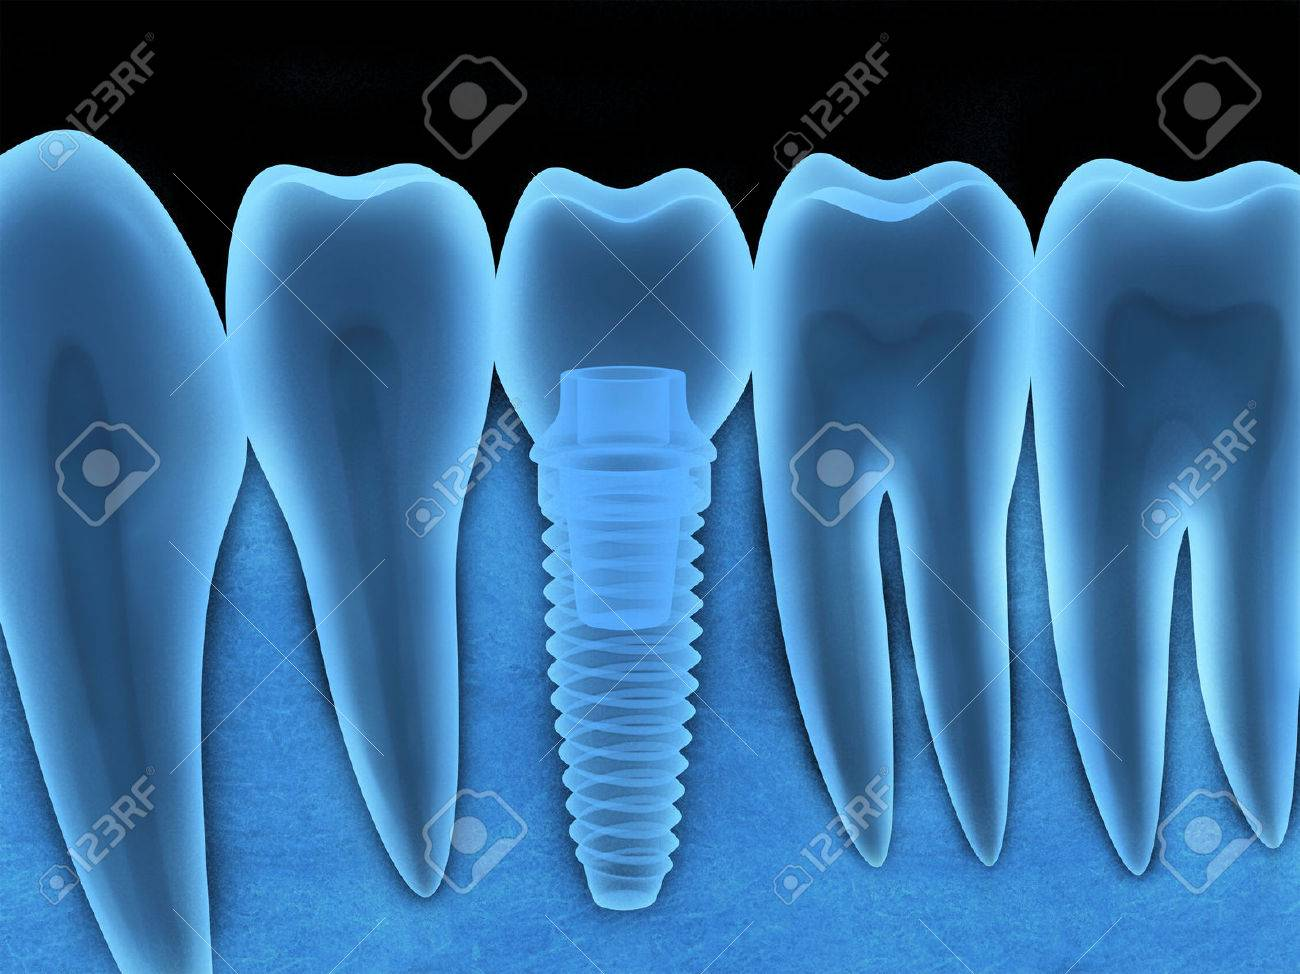 Tooth human implant x-ray (done in 3d, graphics) - 56240942